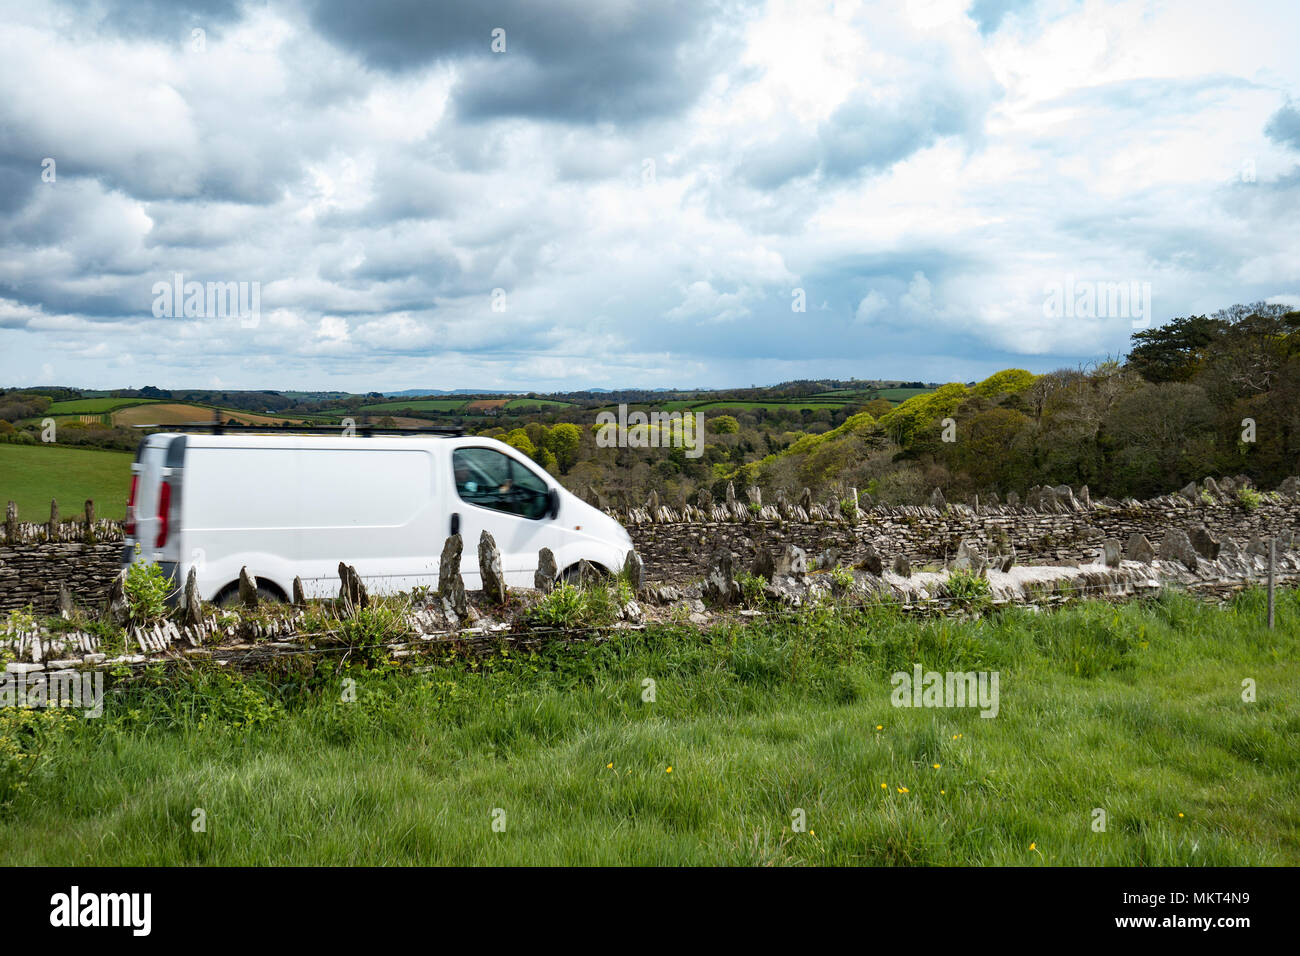 white delivery van speeding on a country lane in cornwall, england, britain, uk. - Stock Image